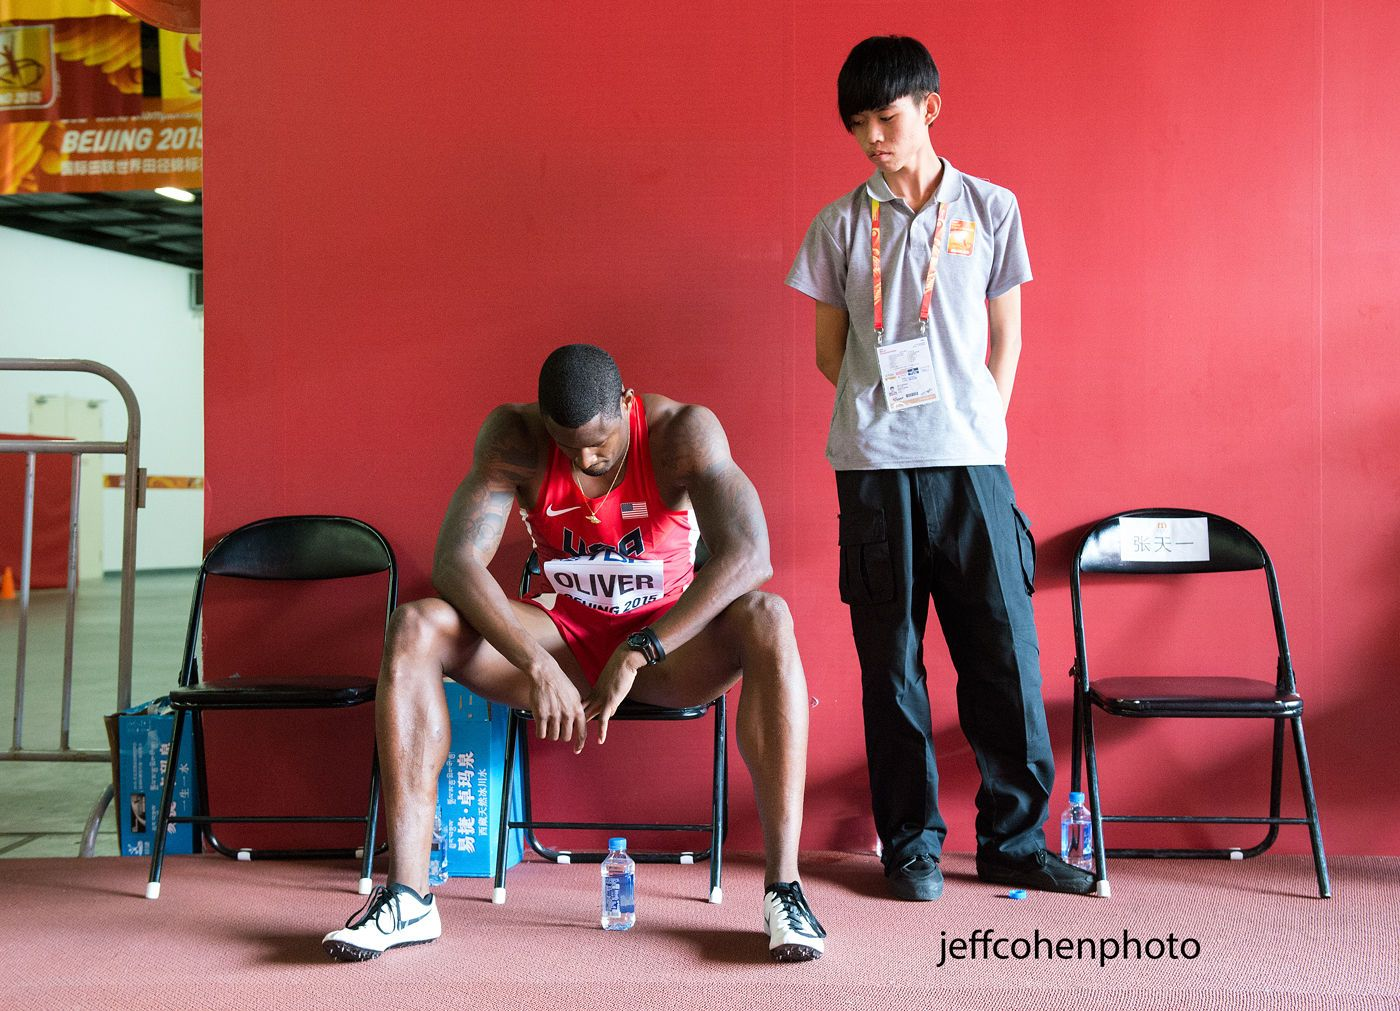 1beijing2015_day_5_david_oliver_waits_11oh_jeff_cohen_photo_18790_web.jpg